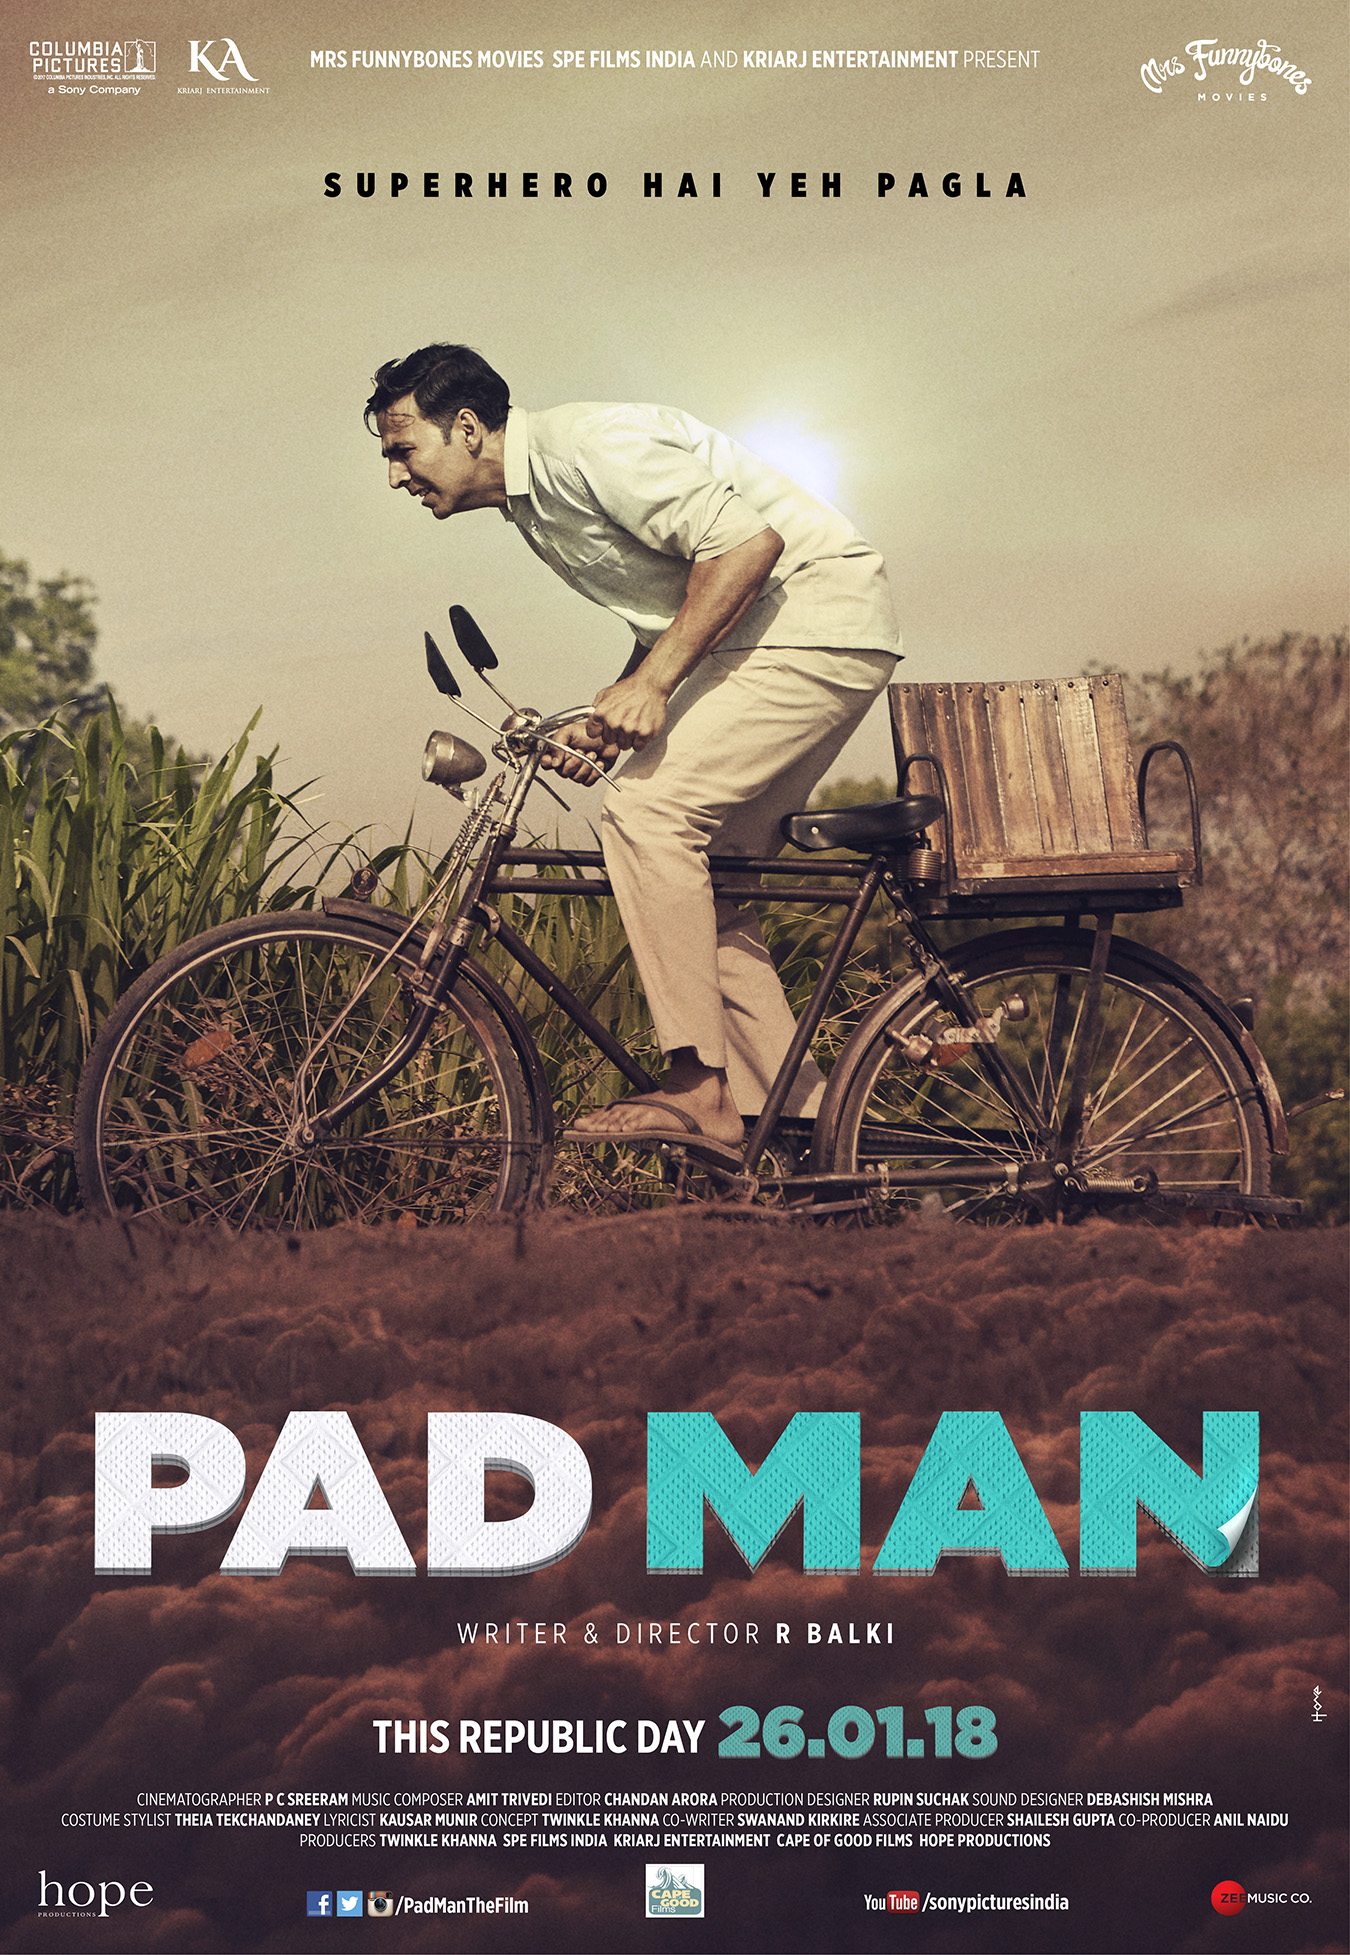 NOT YOUR AVERAGE SUPERHERO FILM! HERE'S PRESENTING THE MOST PROGRESSIVE FAMILY ENTERTAINER 'PAD MAN', IN CINEMAS 25TH JANUARY 2018